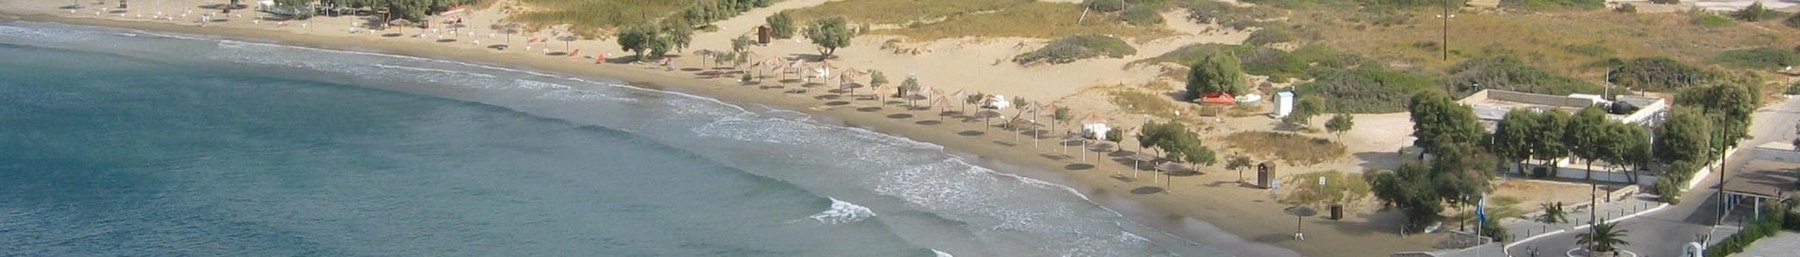 WV banner South Aegean Islands Gallissas beach.jpg